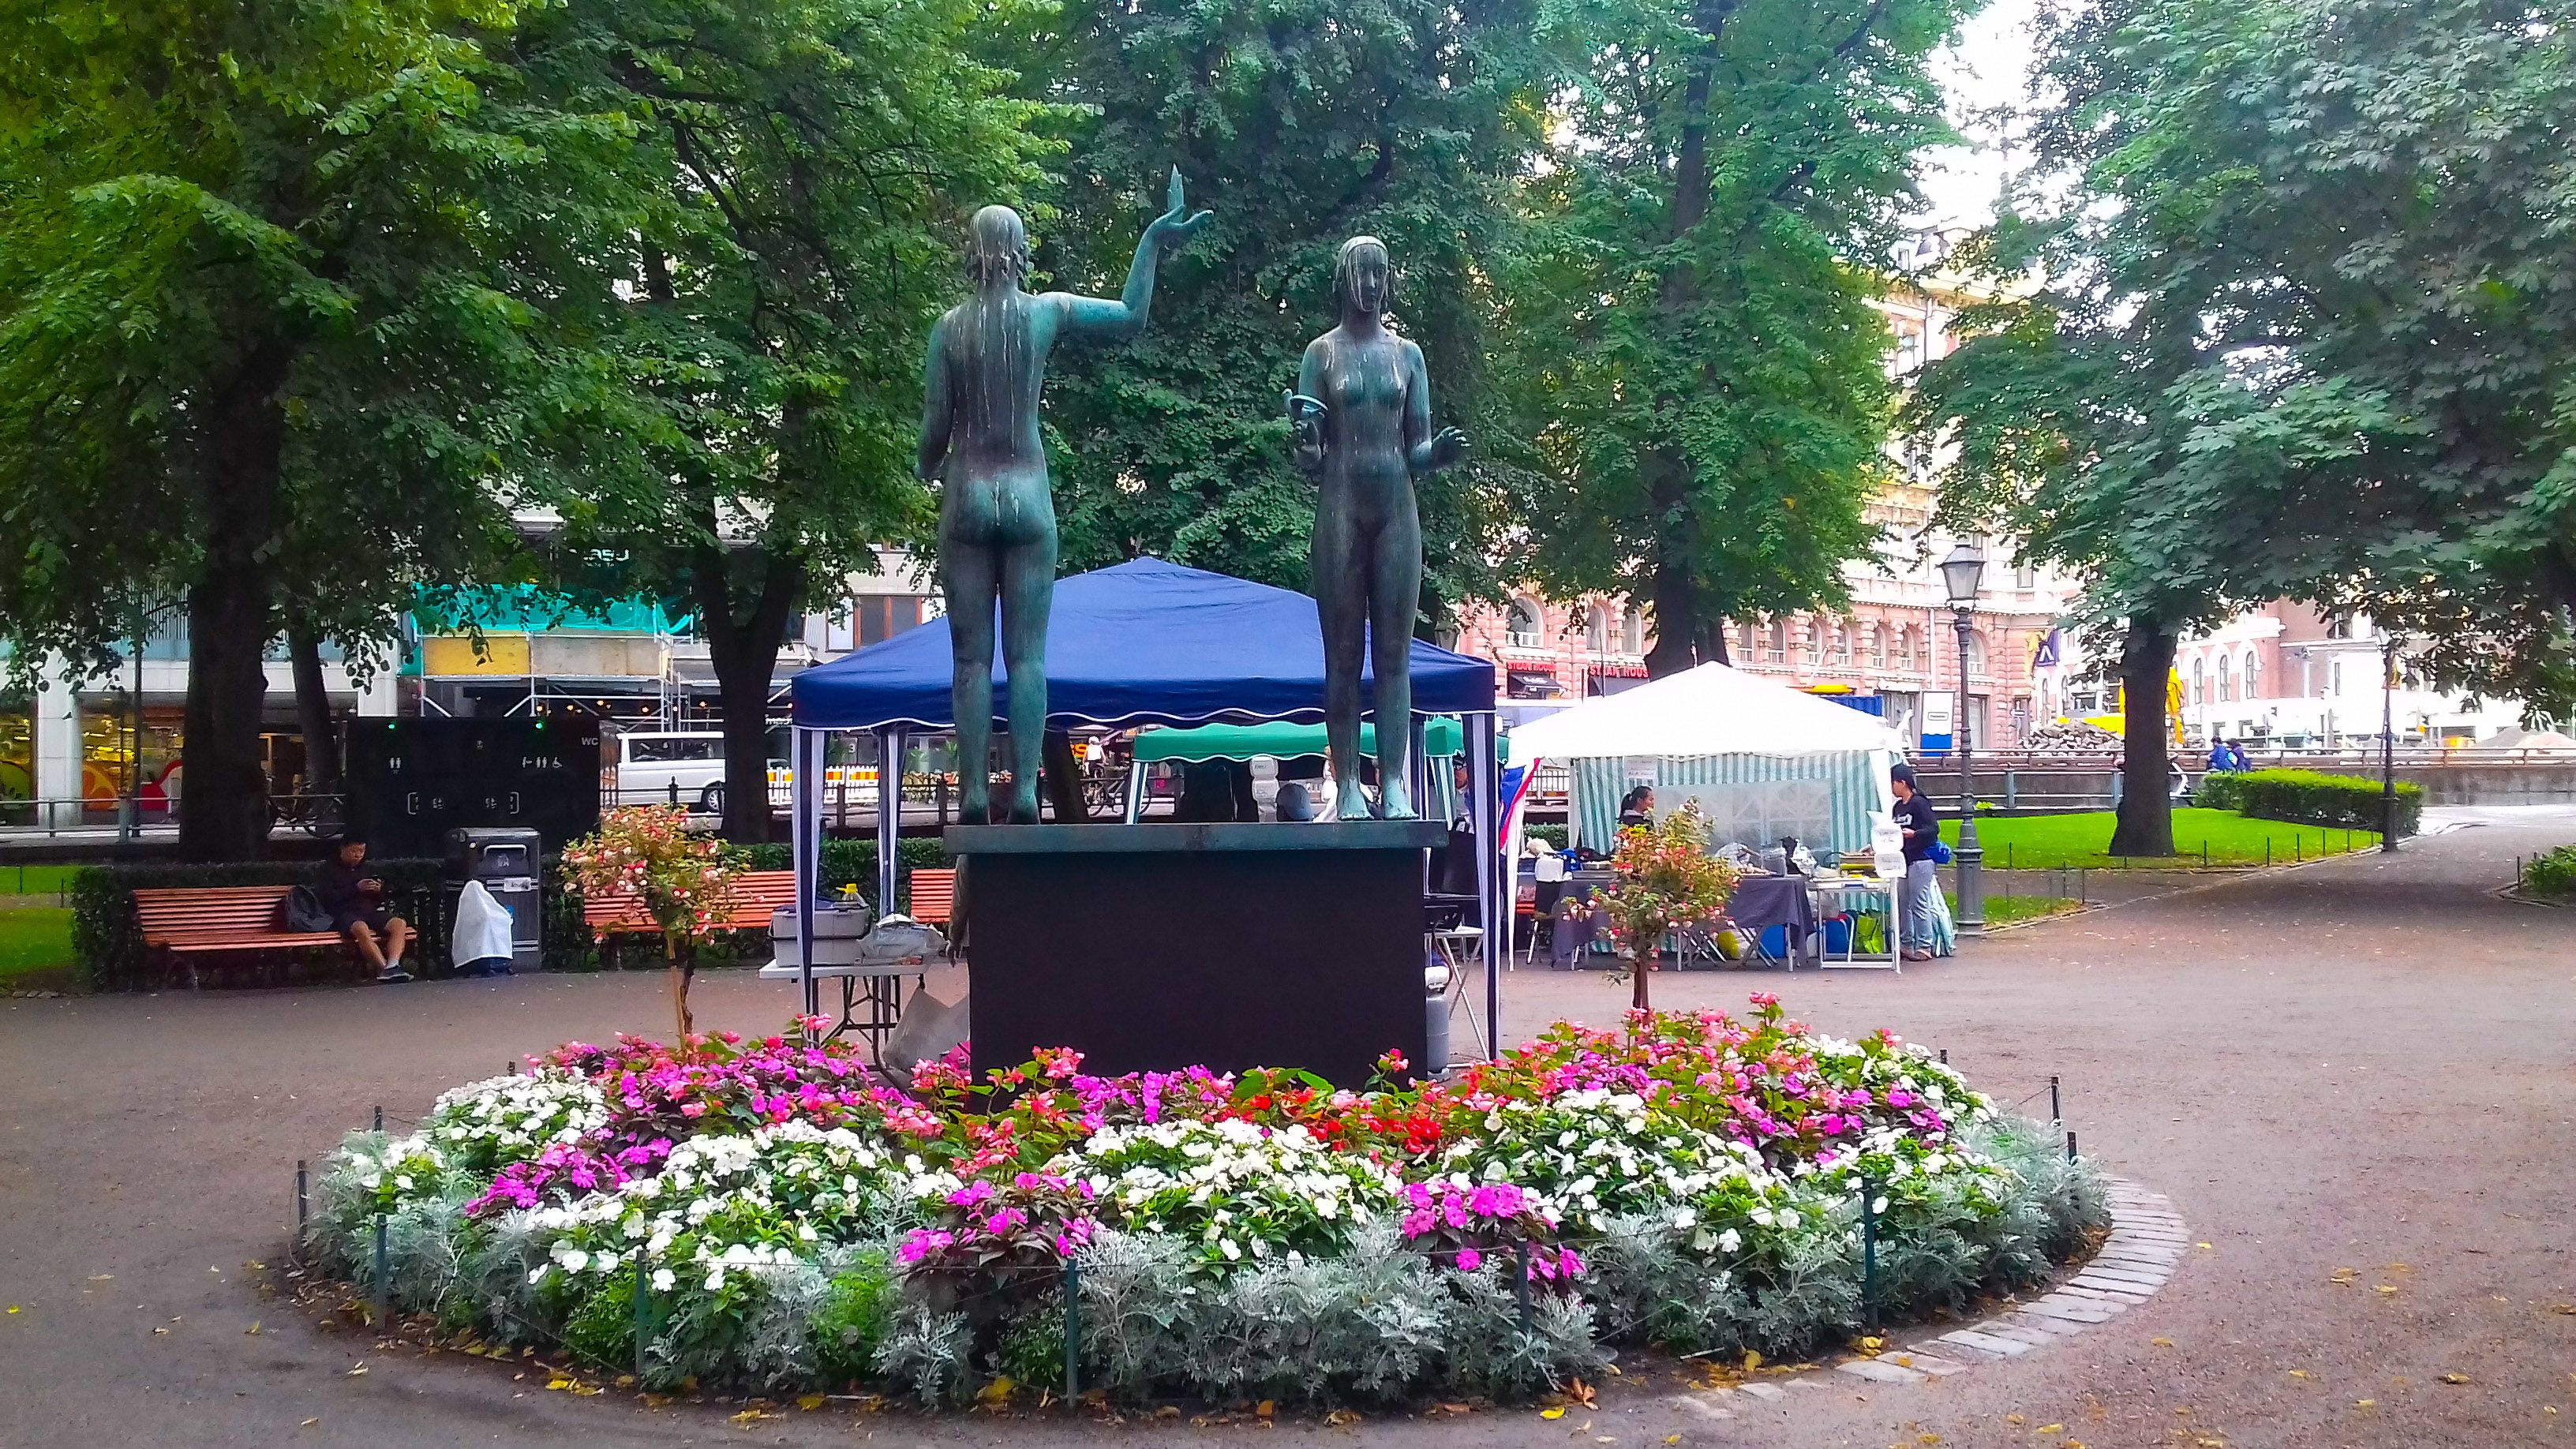 Tale And Truth Or Fact And Fable 1932 Two Girls Of Helsinki Finland 2018 Travel Adventure My Travel